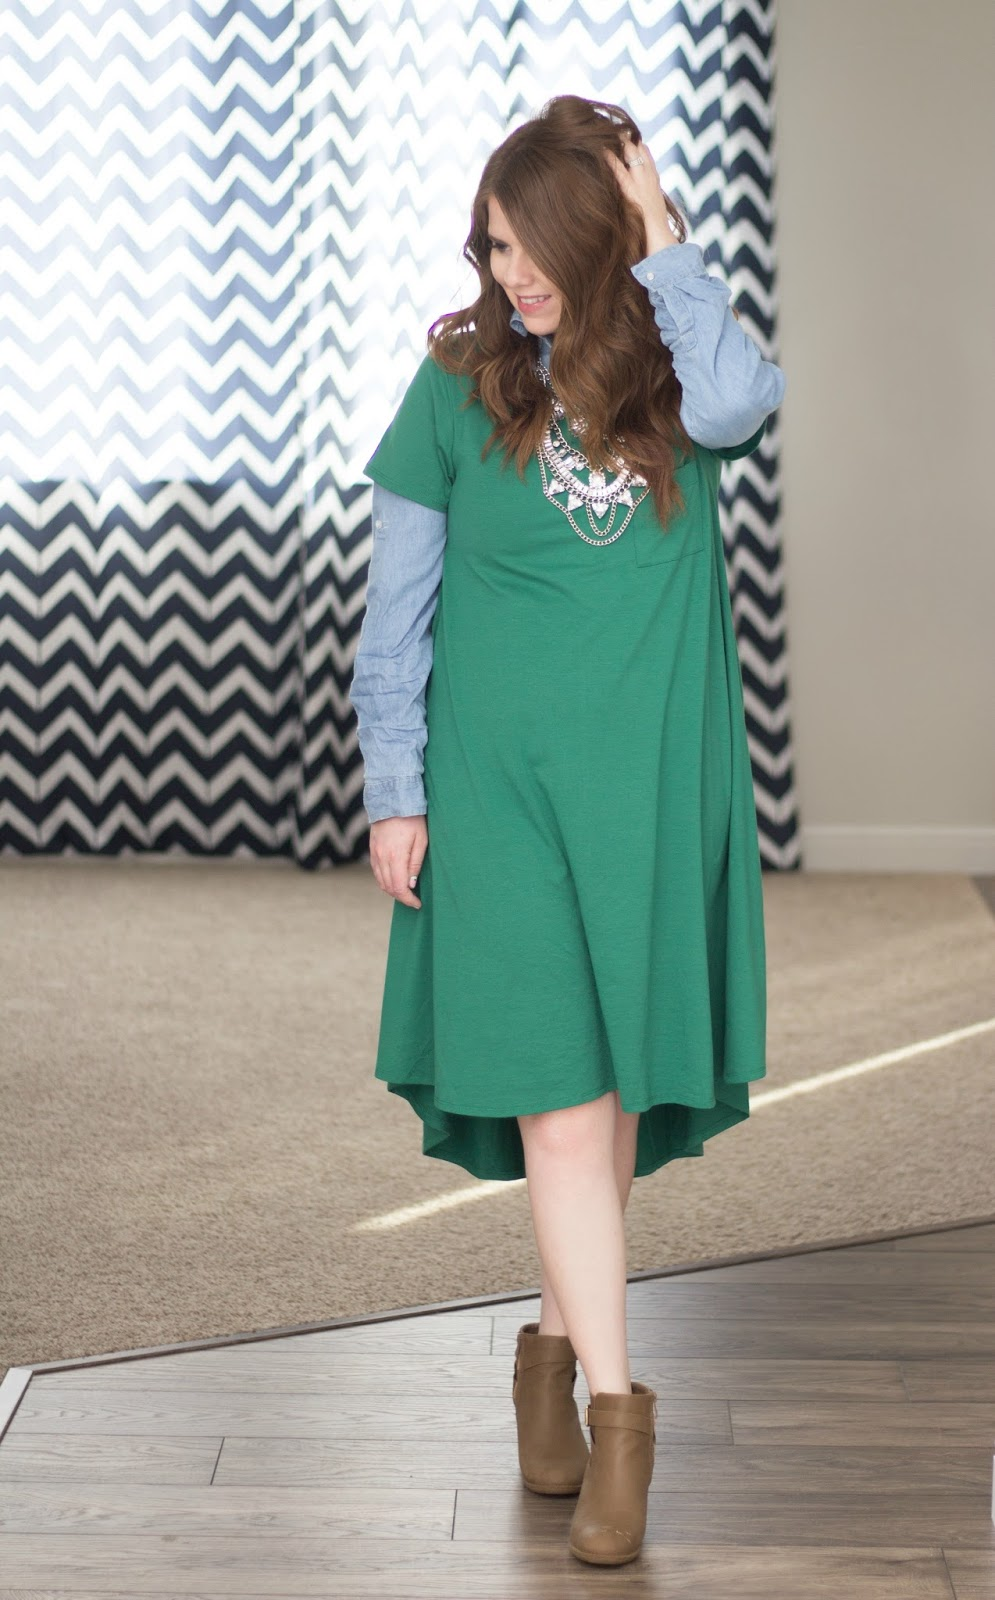 Layered Lularoe Carly graphic